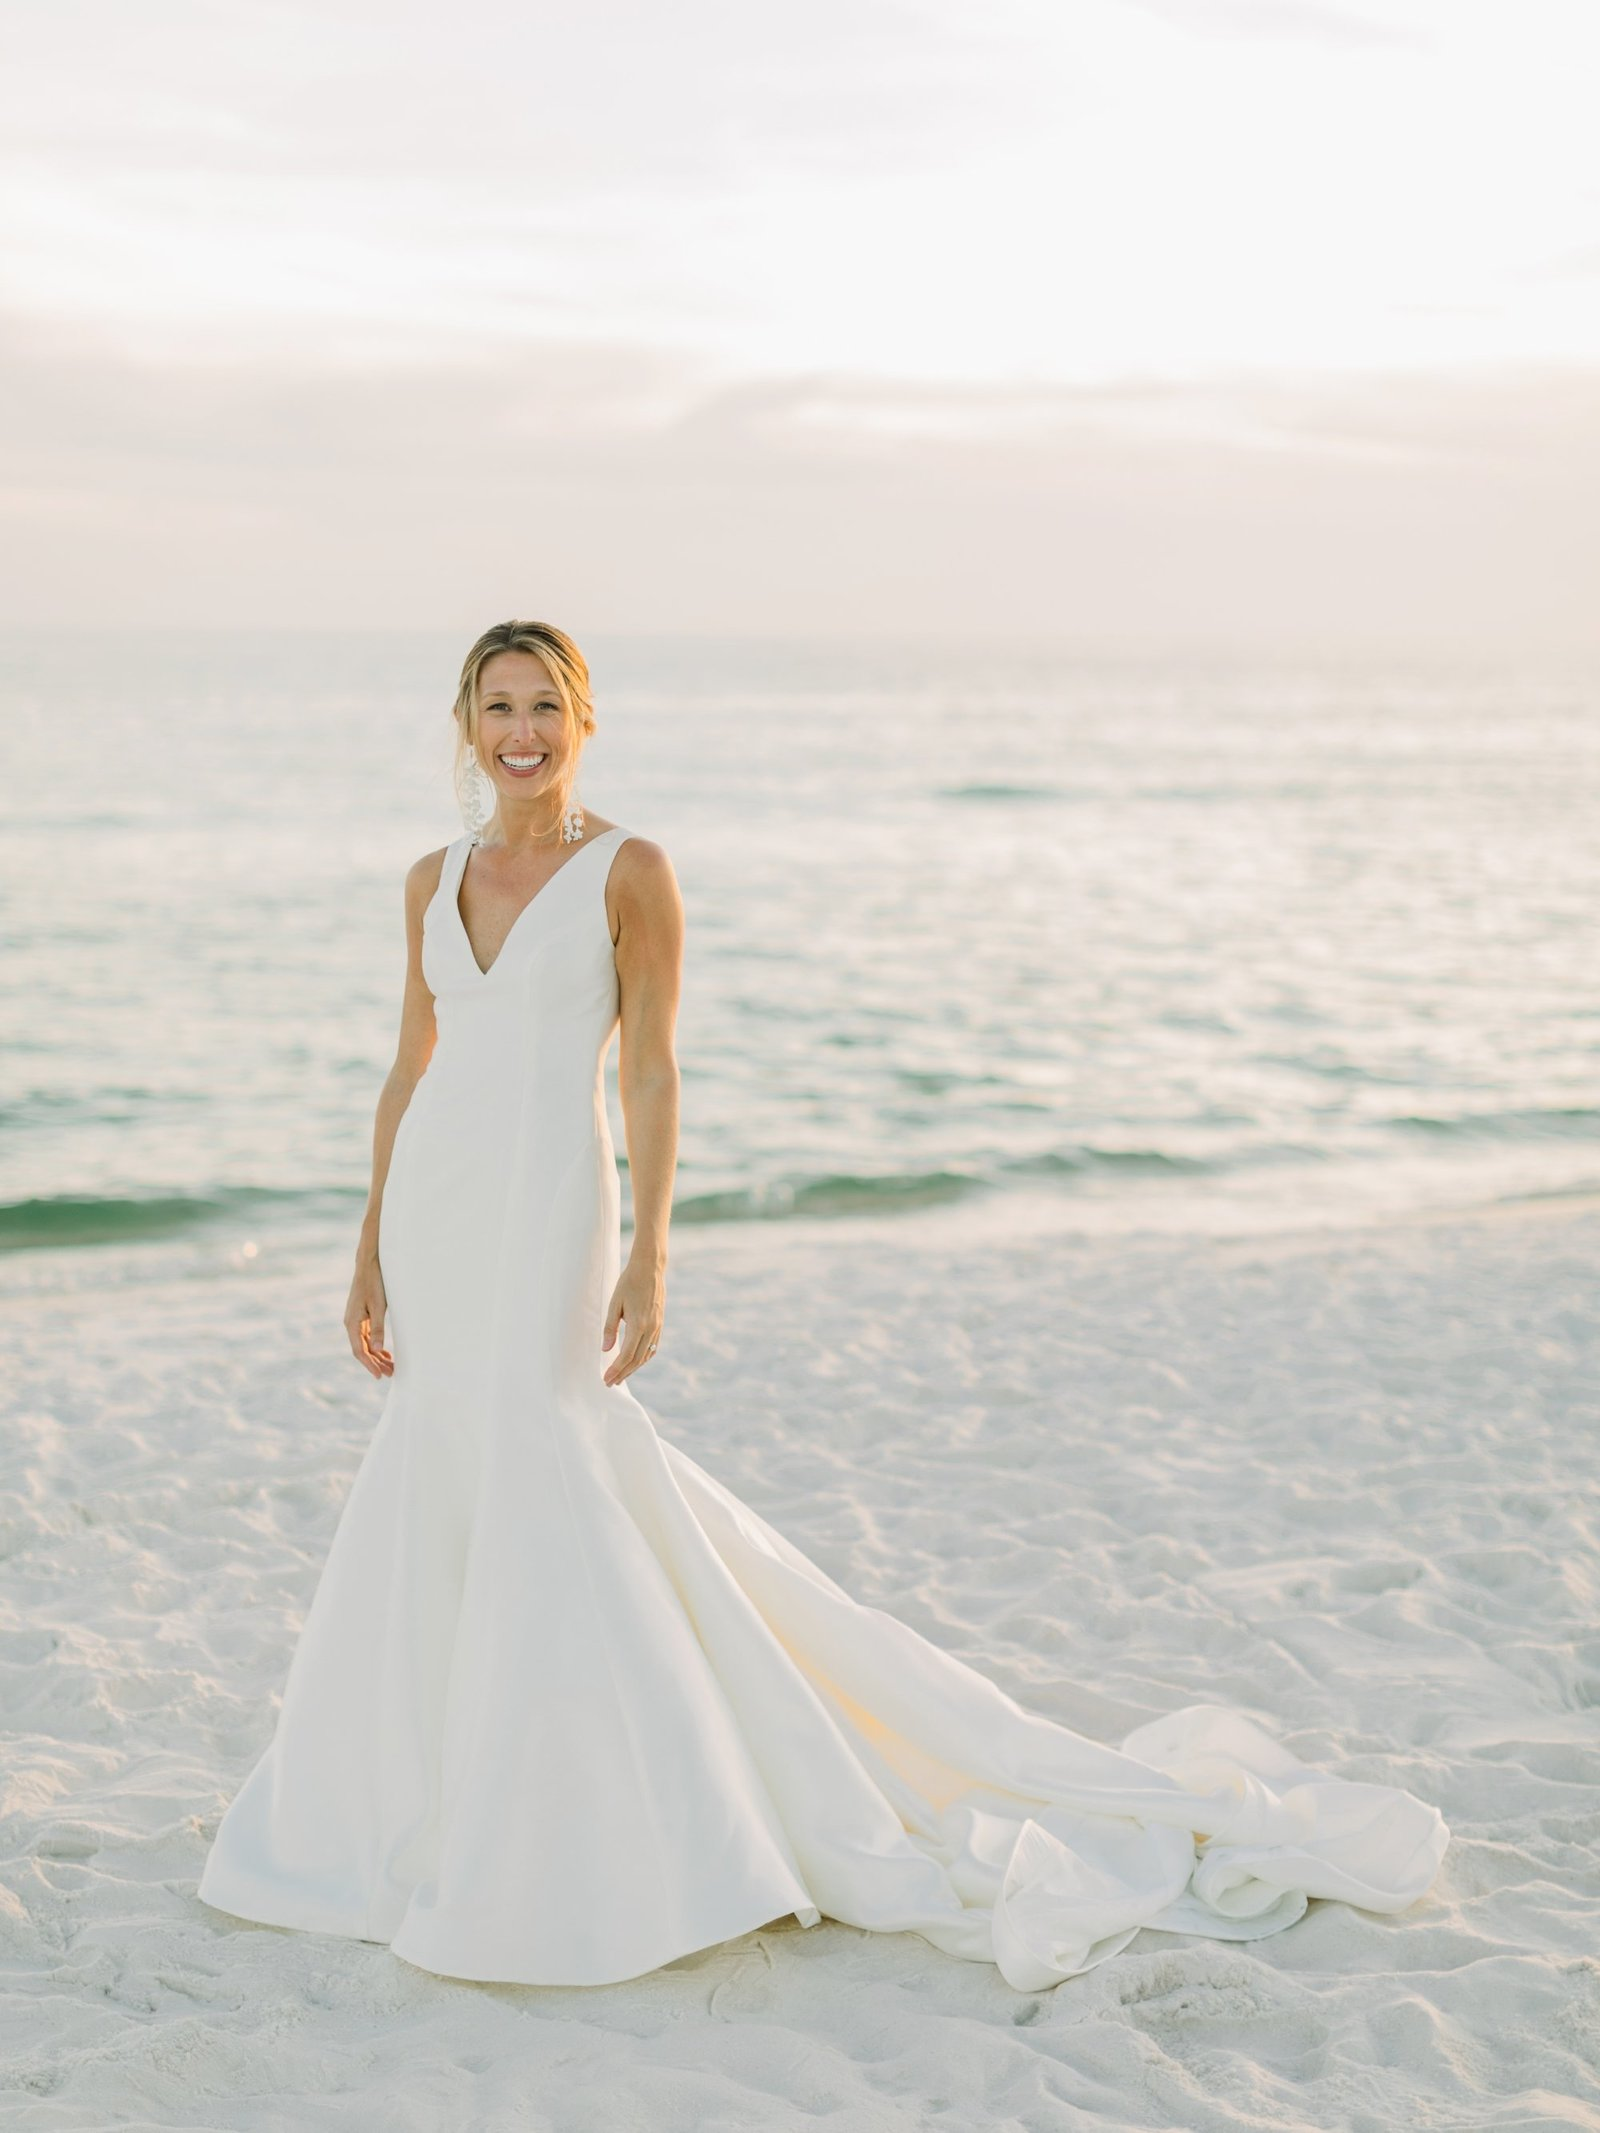 Rosemary Beach Wedding Photographer 30A Alys Beach_0115